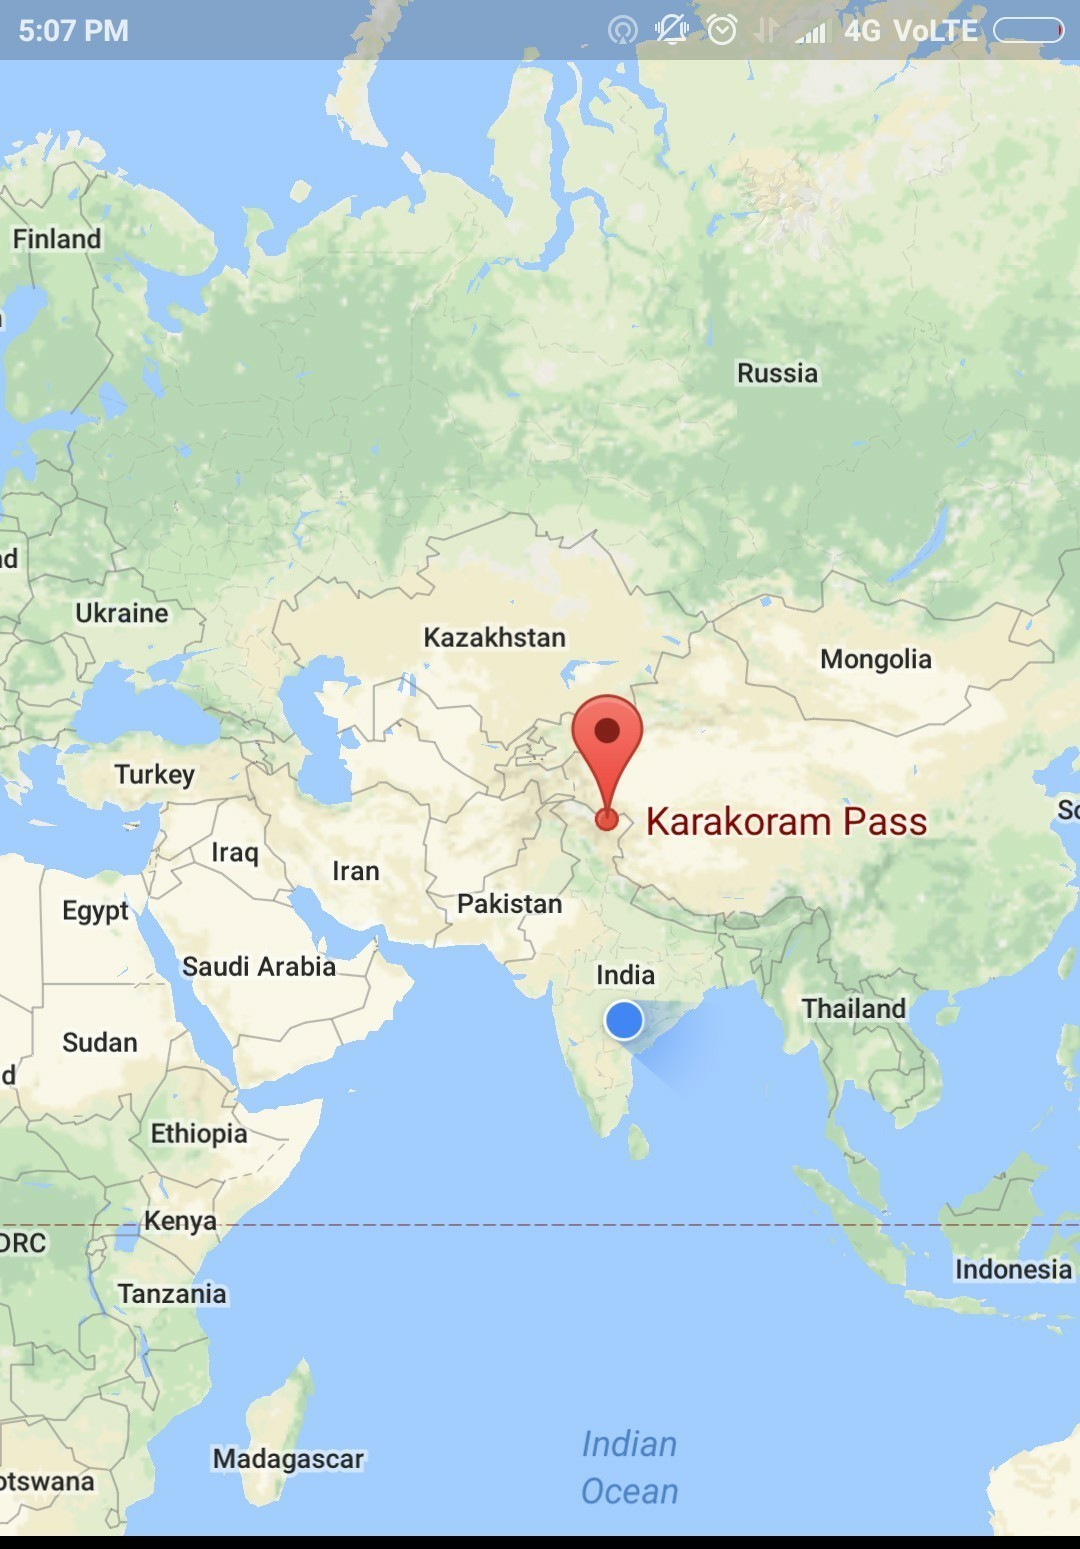 Mark the following on an outline map of India: Karakoram ...